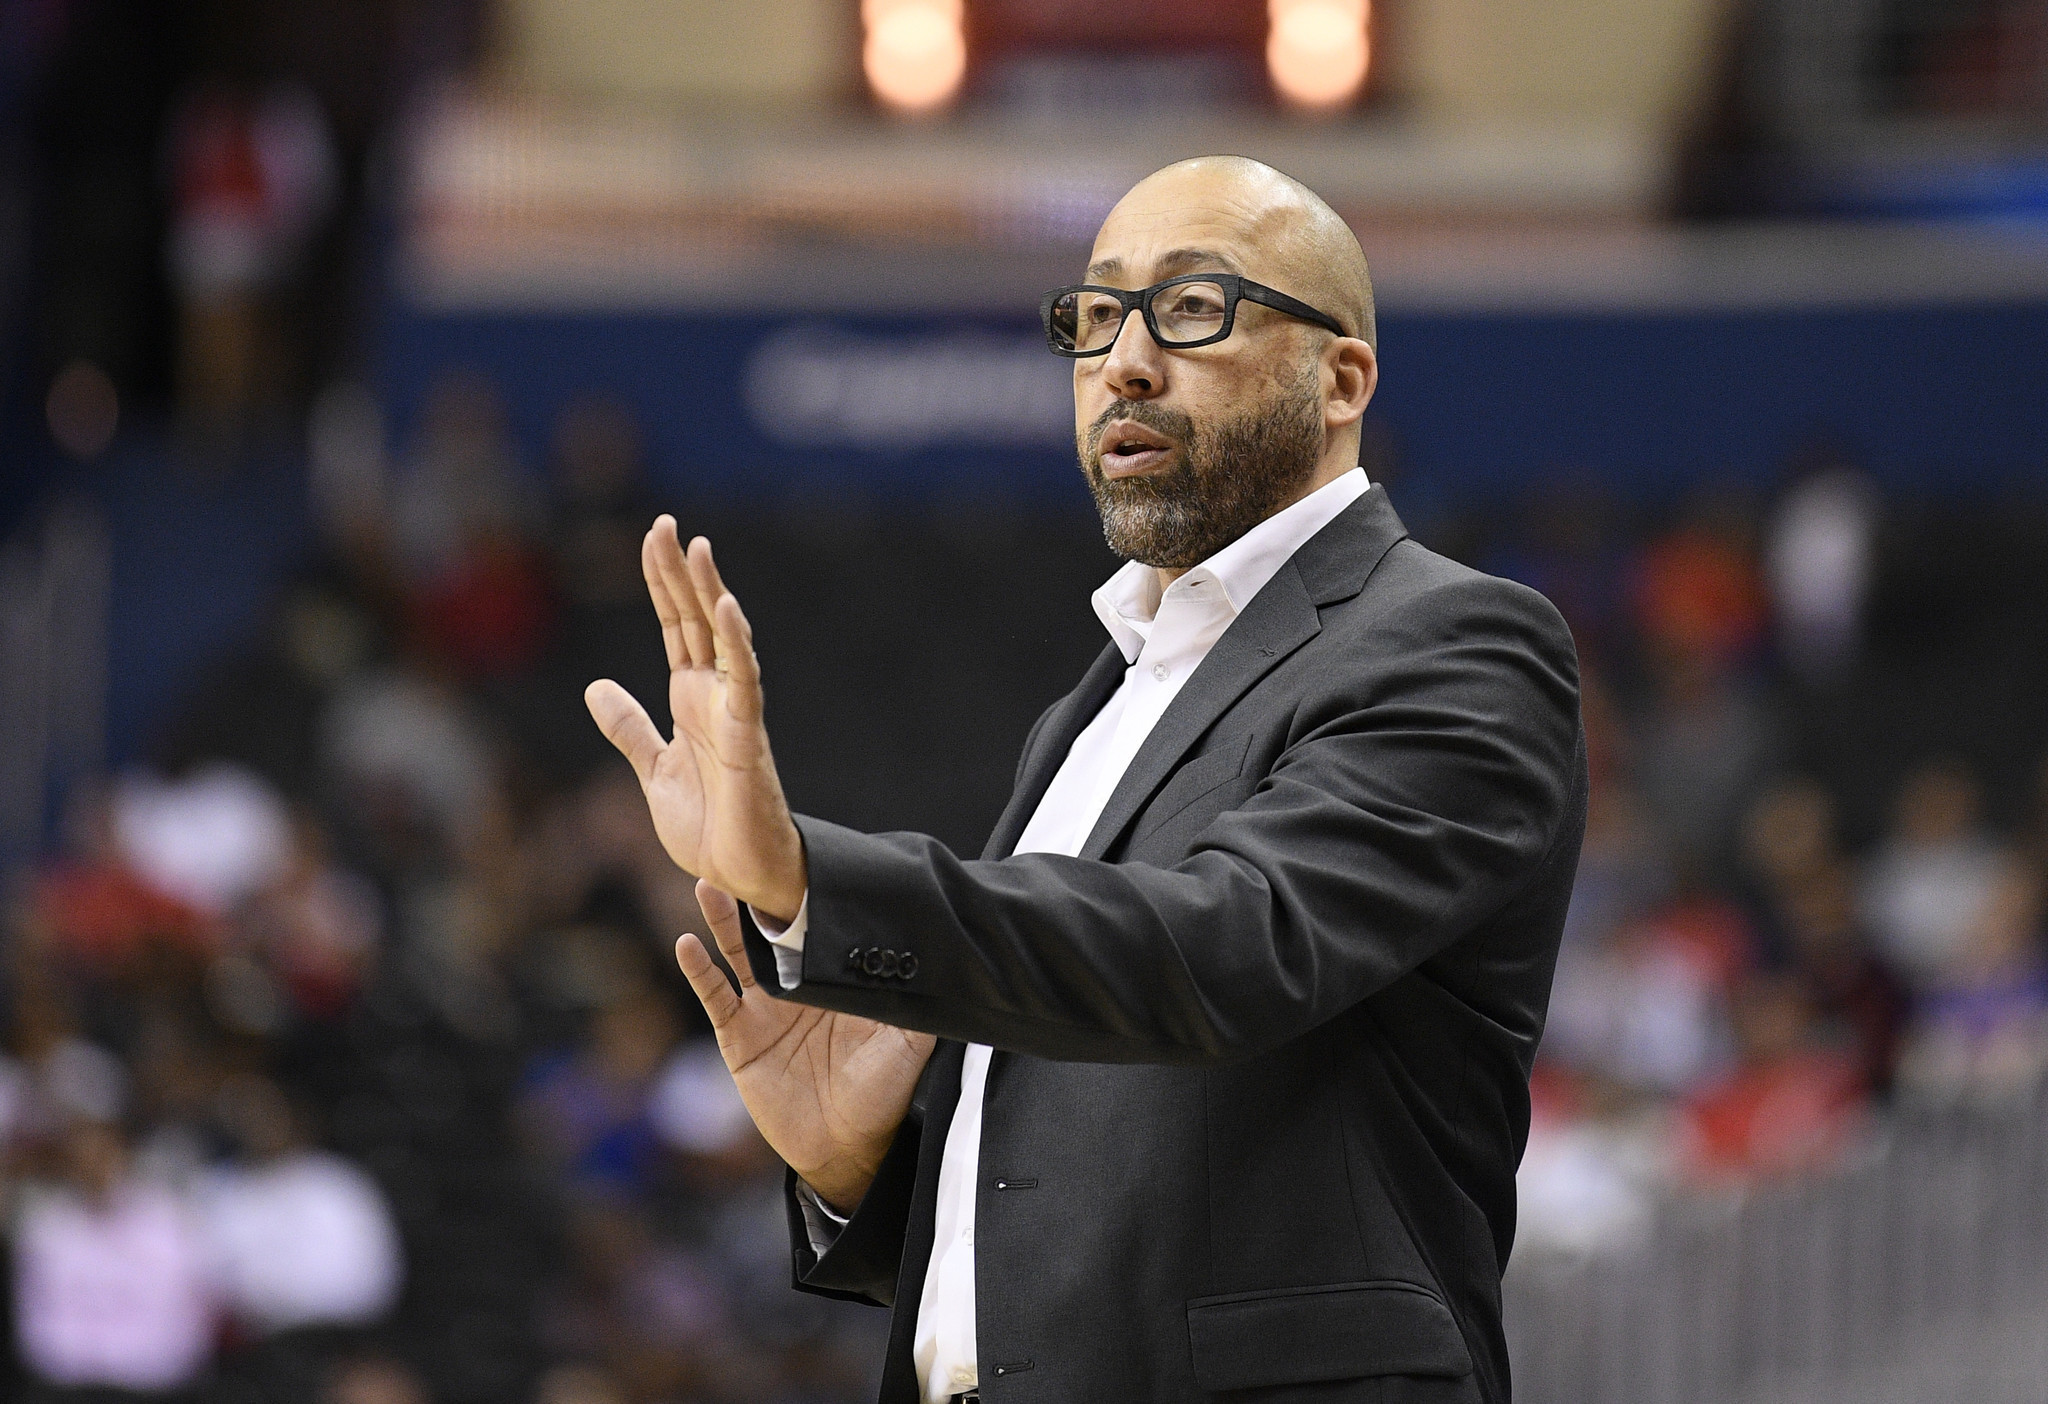 After Kenny Atkinson's firing, David Fizdale says a team's culture has to hold up to 'disgruntled players'